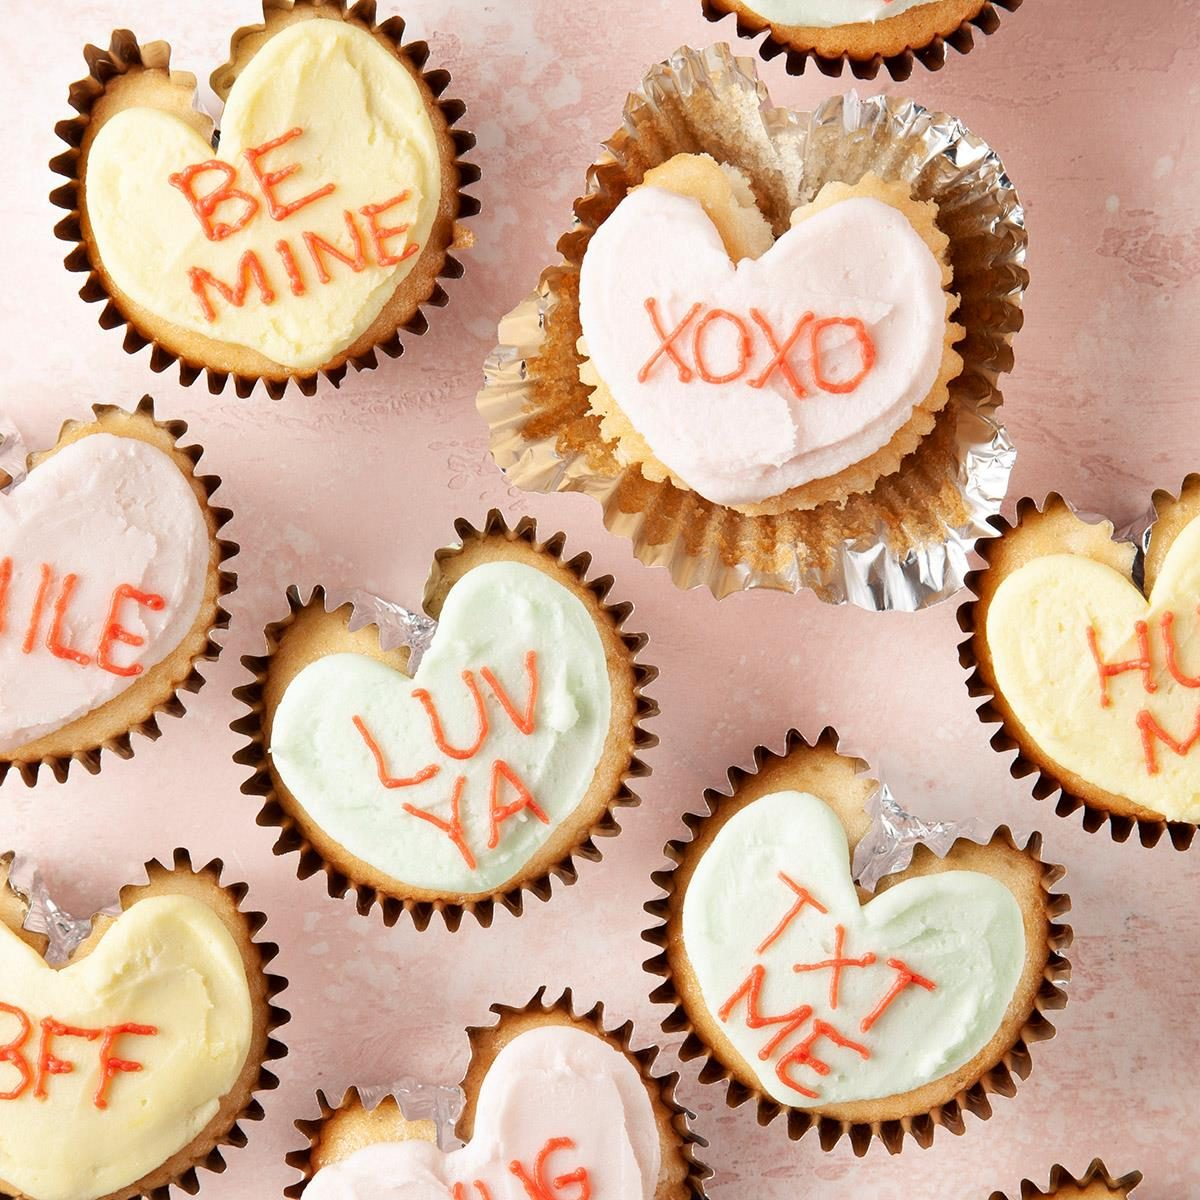 30 Valentine's Day Cupcakes to Bake for Your Special Someone